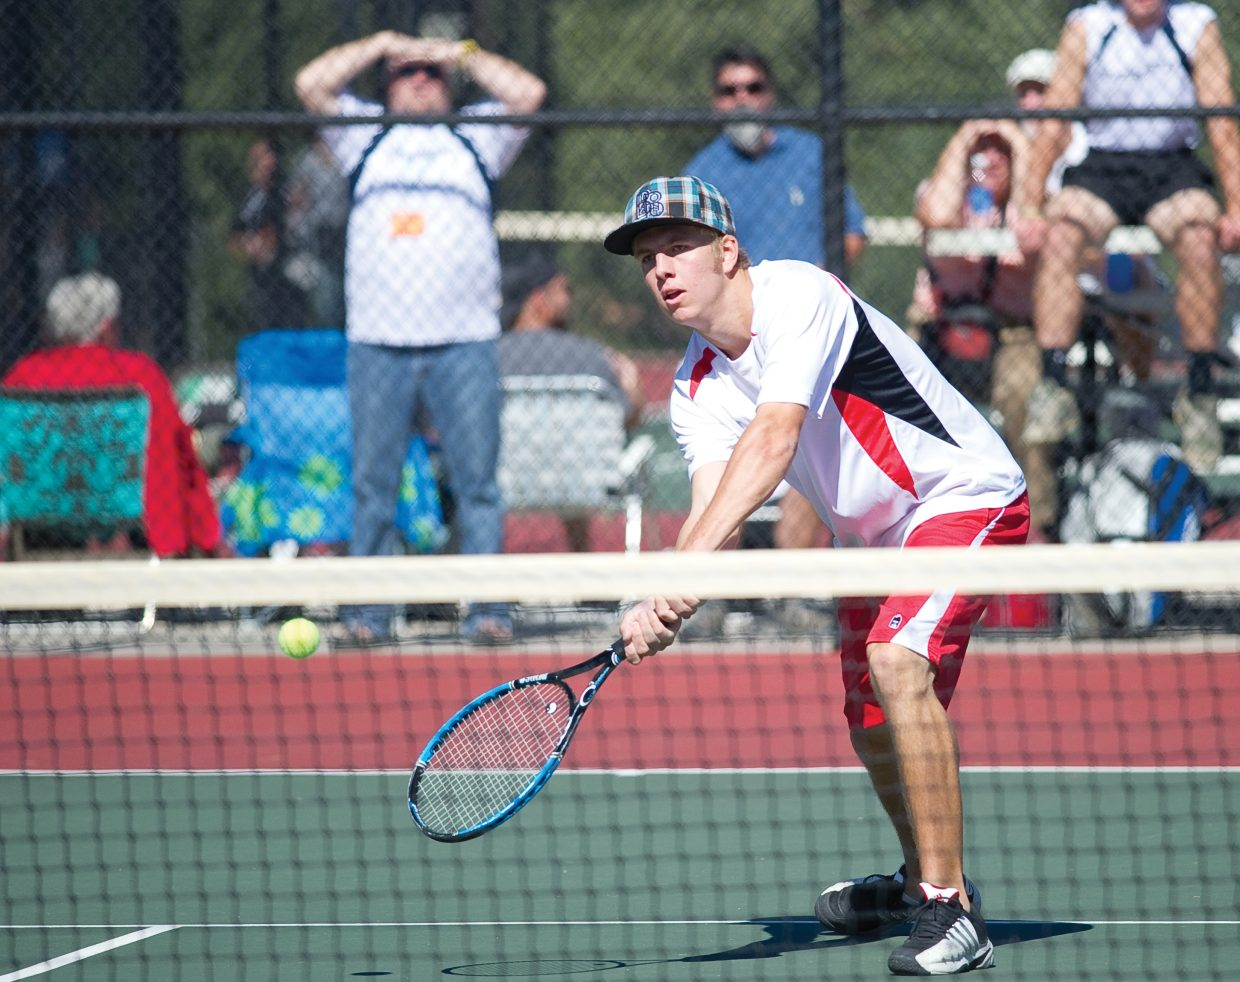 Steamboat Springs Erik Owen returns a shot during a first round of the state high school tennis tournament in Pueblo on Thursday afternoon. Owen and teammate Stefan Sortland were playing in the No. 3 doubles bracket.